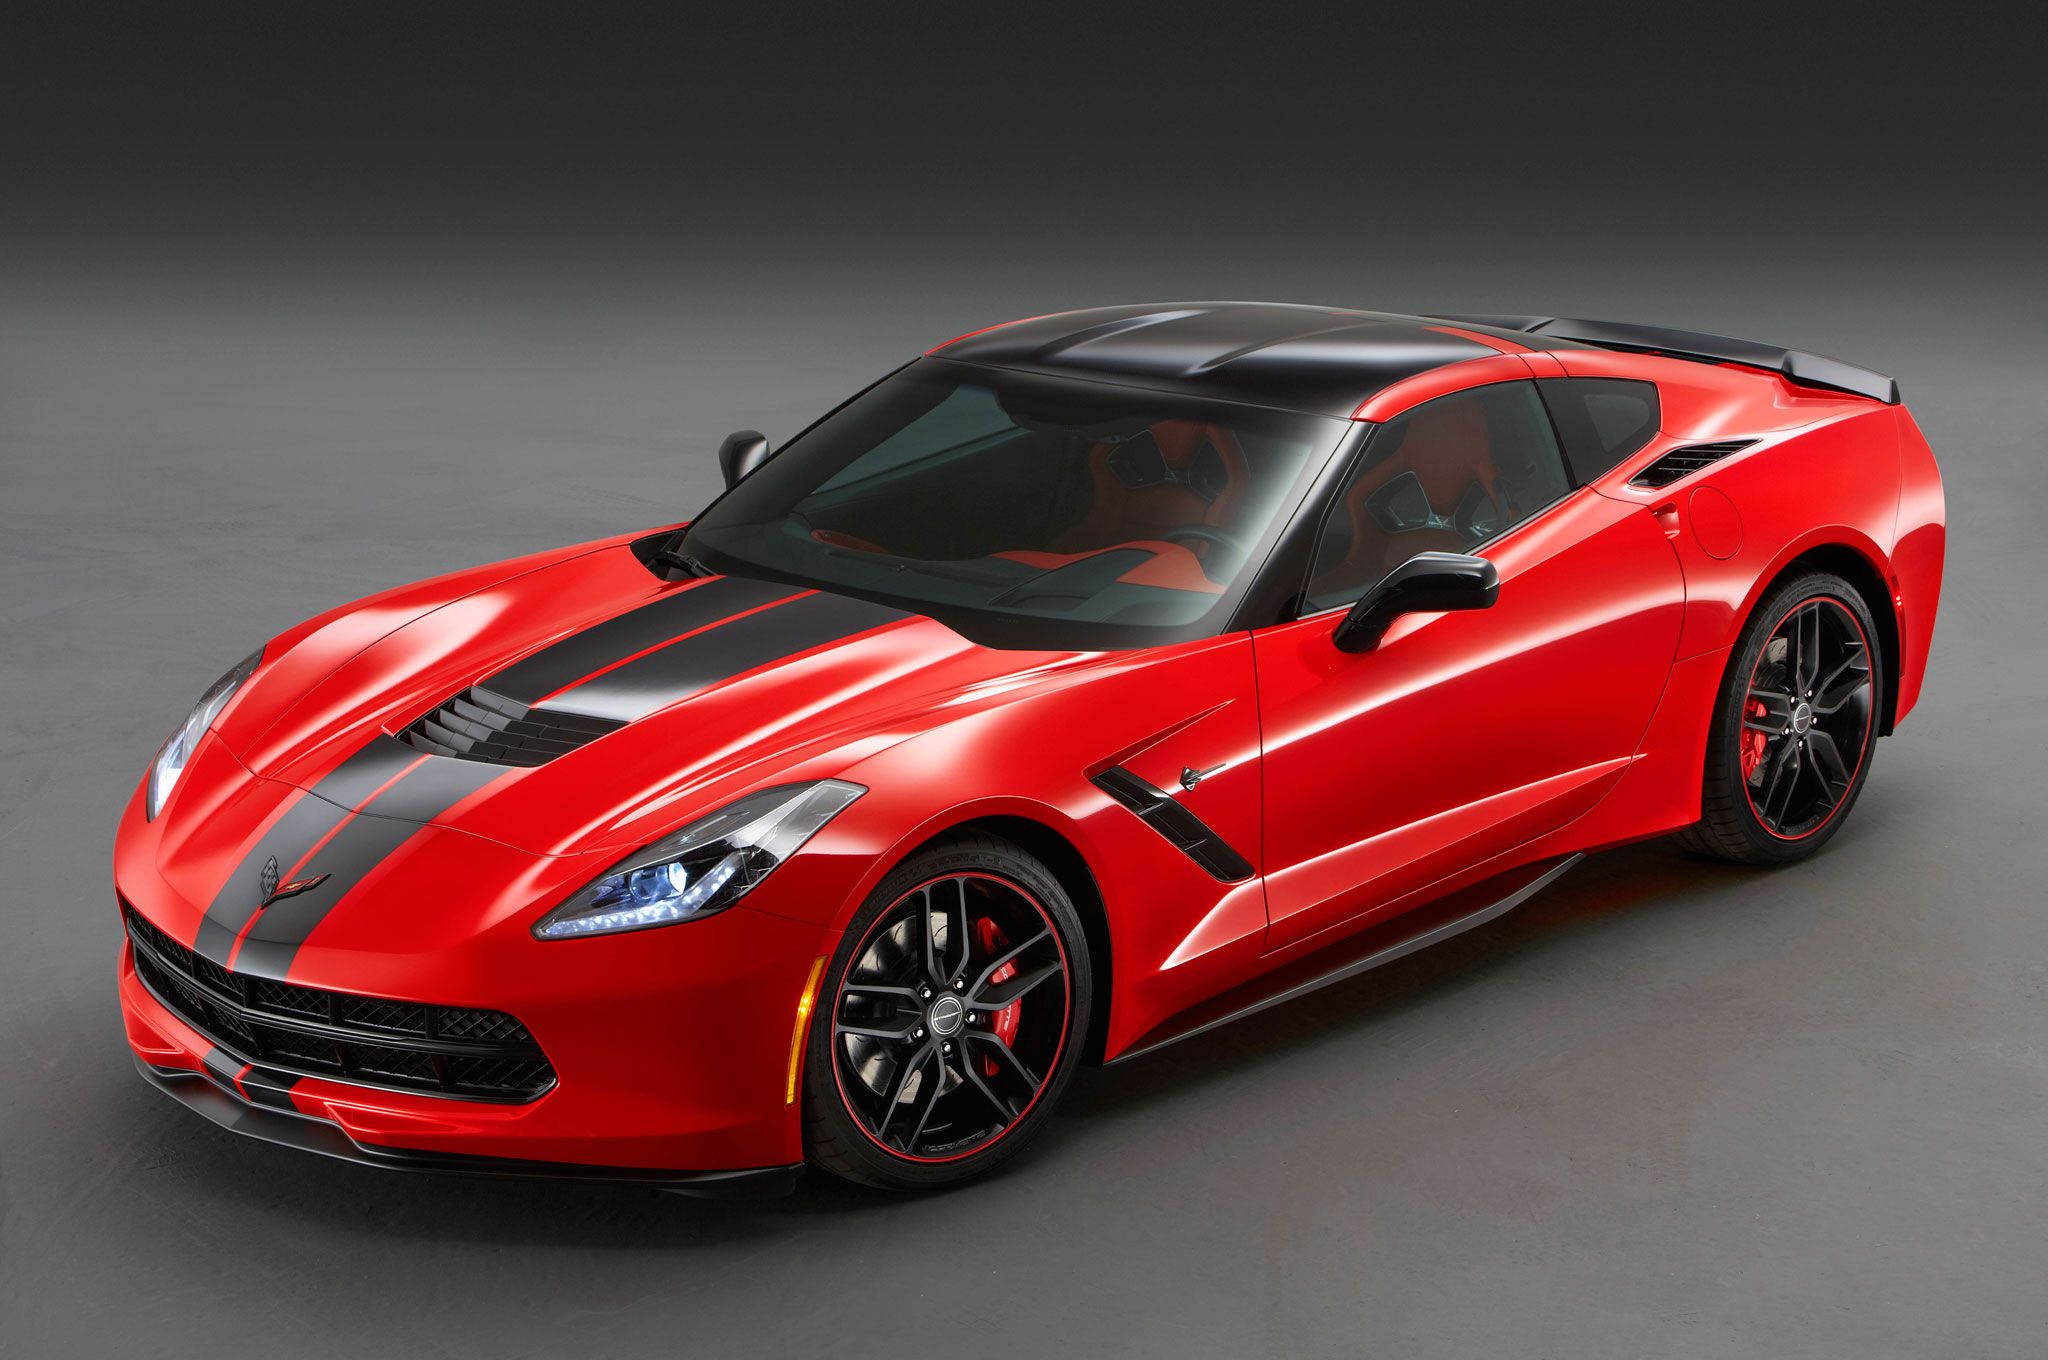 chevrolet corvette 2015 red. resultado de imagen para chevrolet camaro x corvette 2015 red